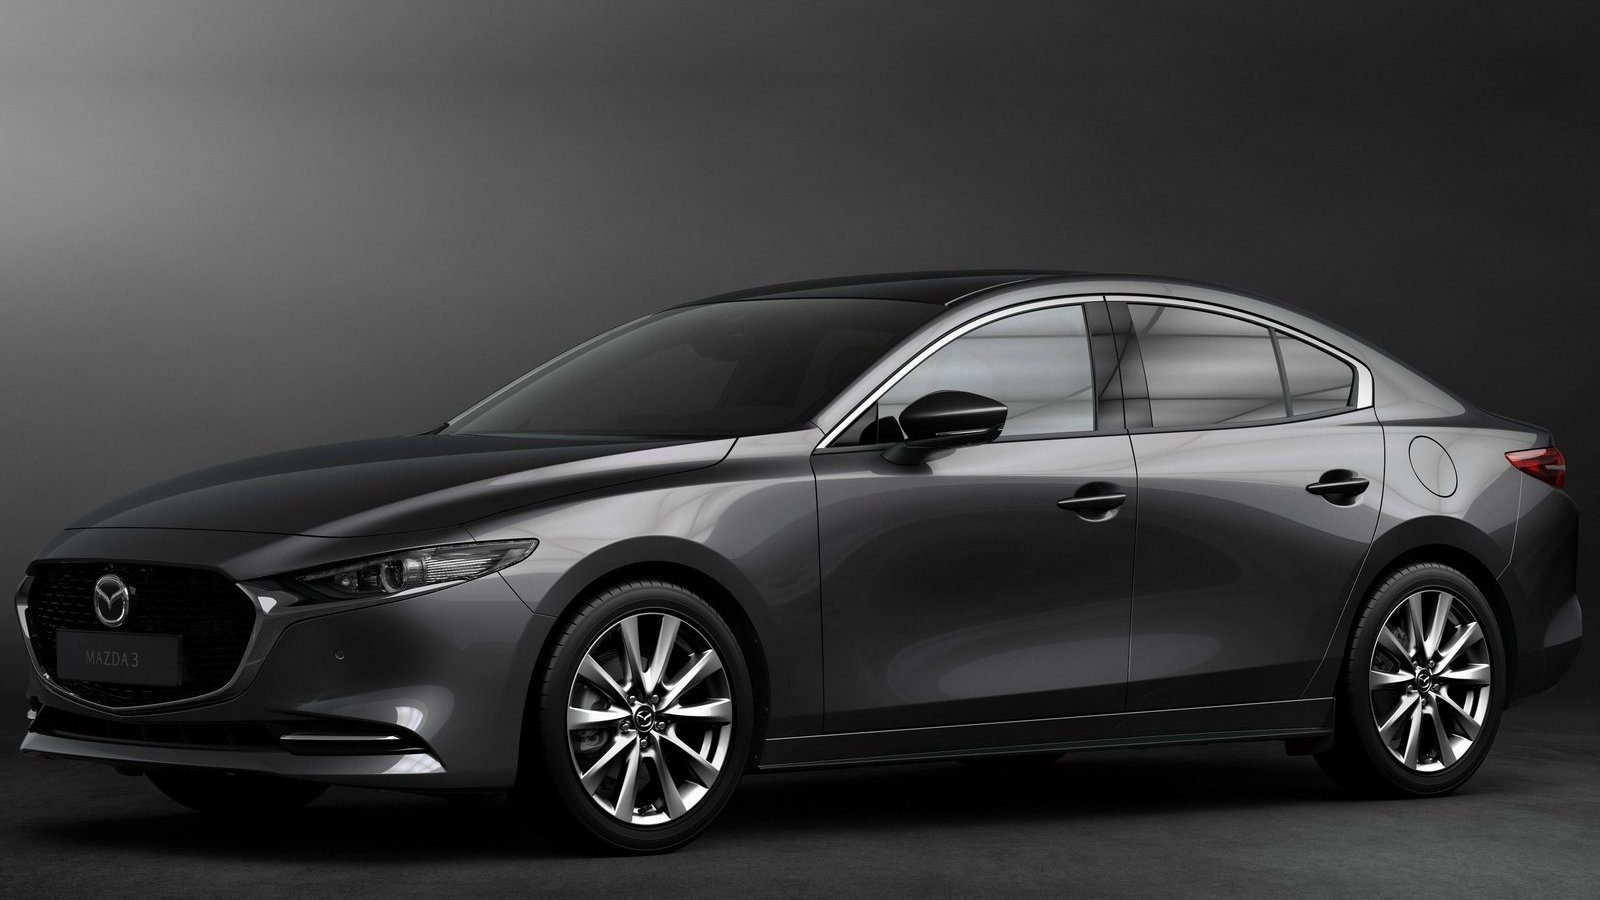 dit is de nieuwe generatie mazda 3. Black Bedroom Furniture Sets. Home Design Ideas